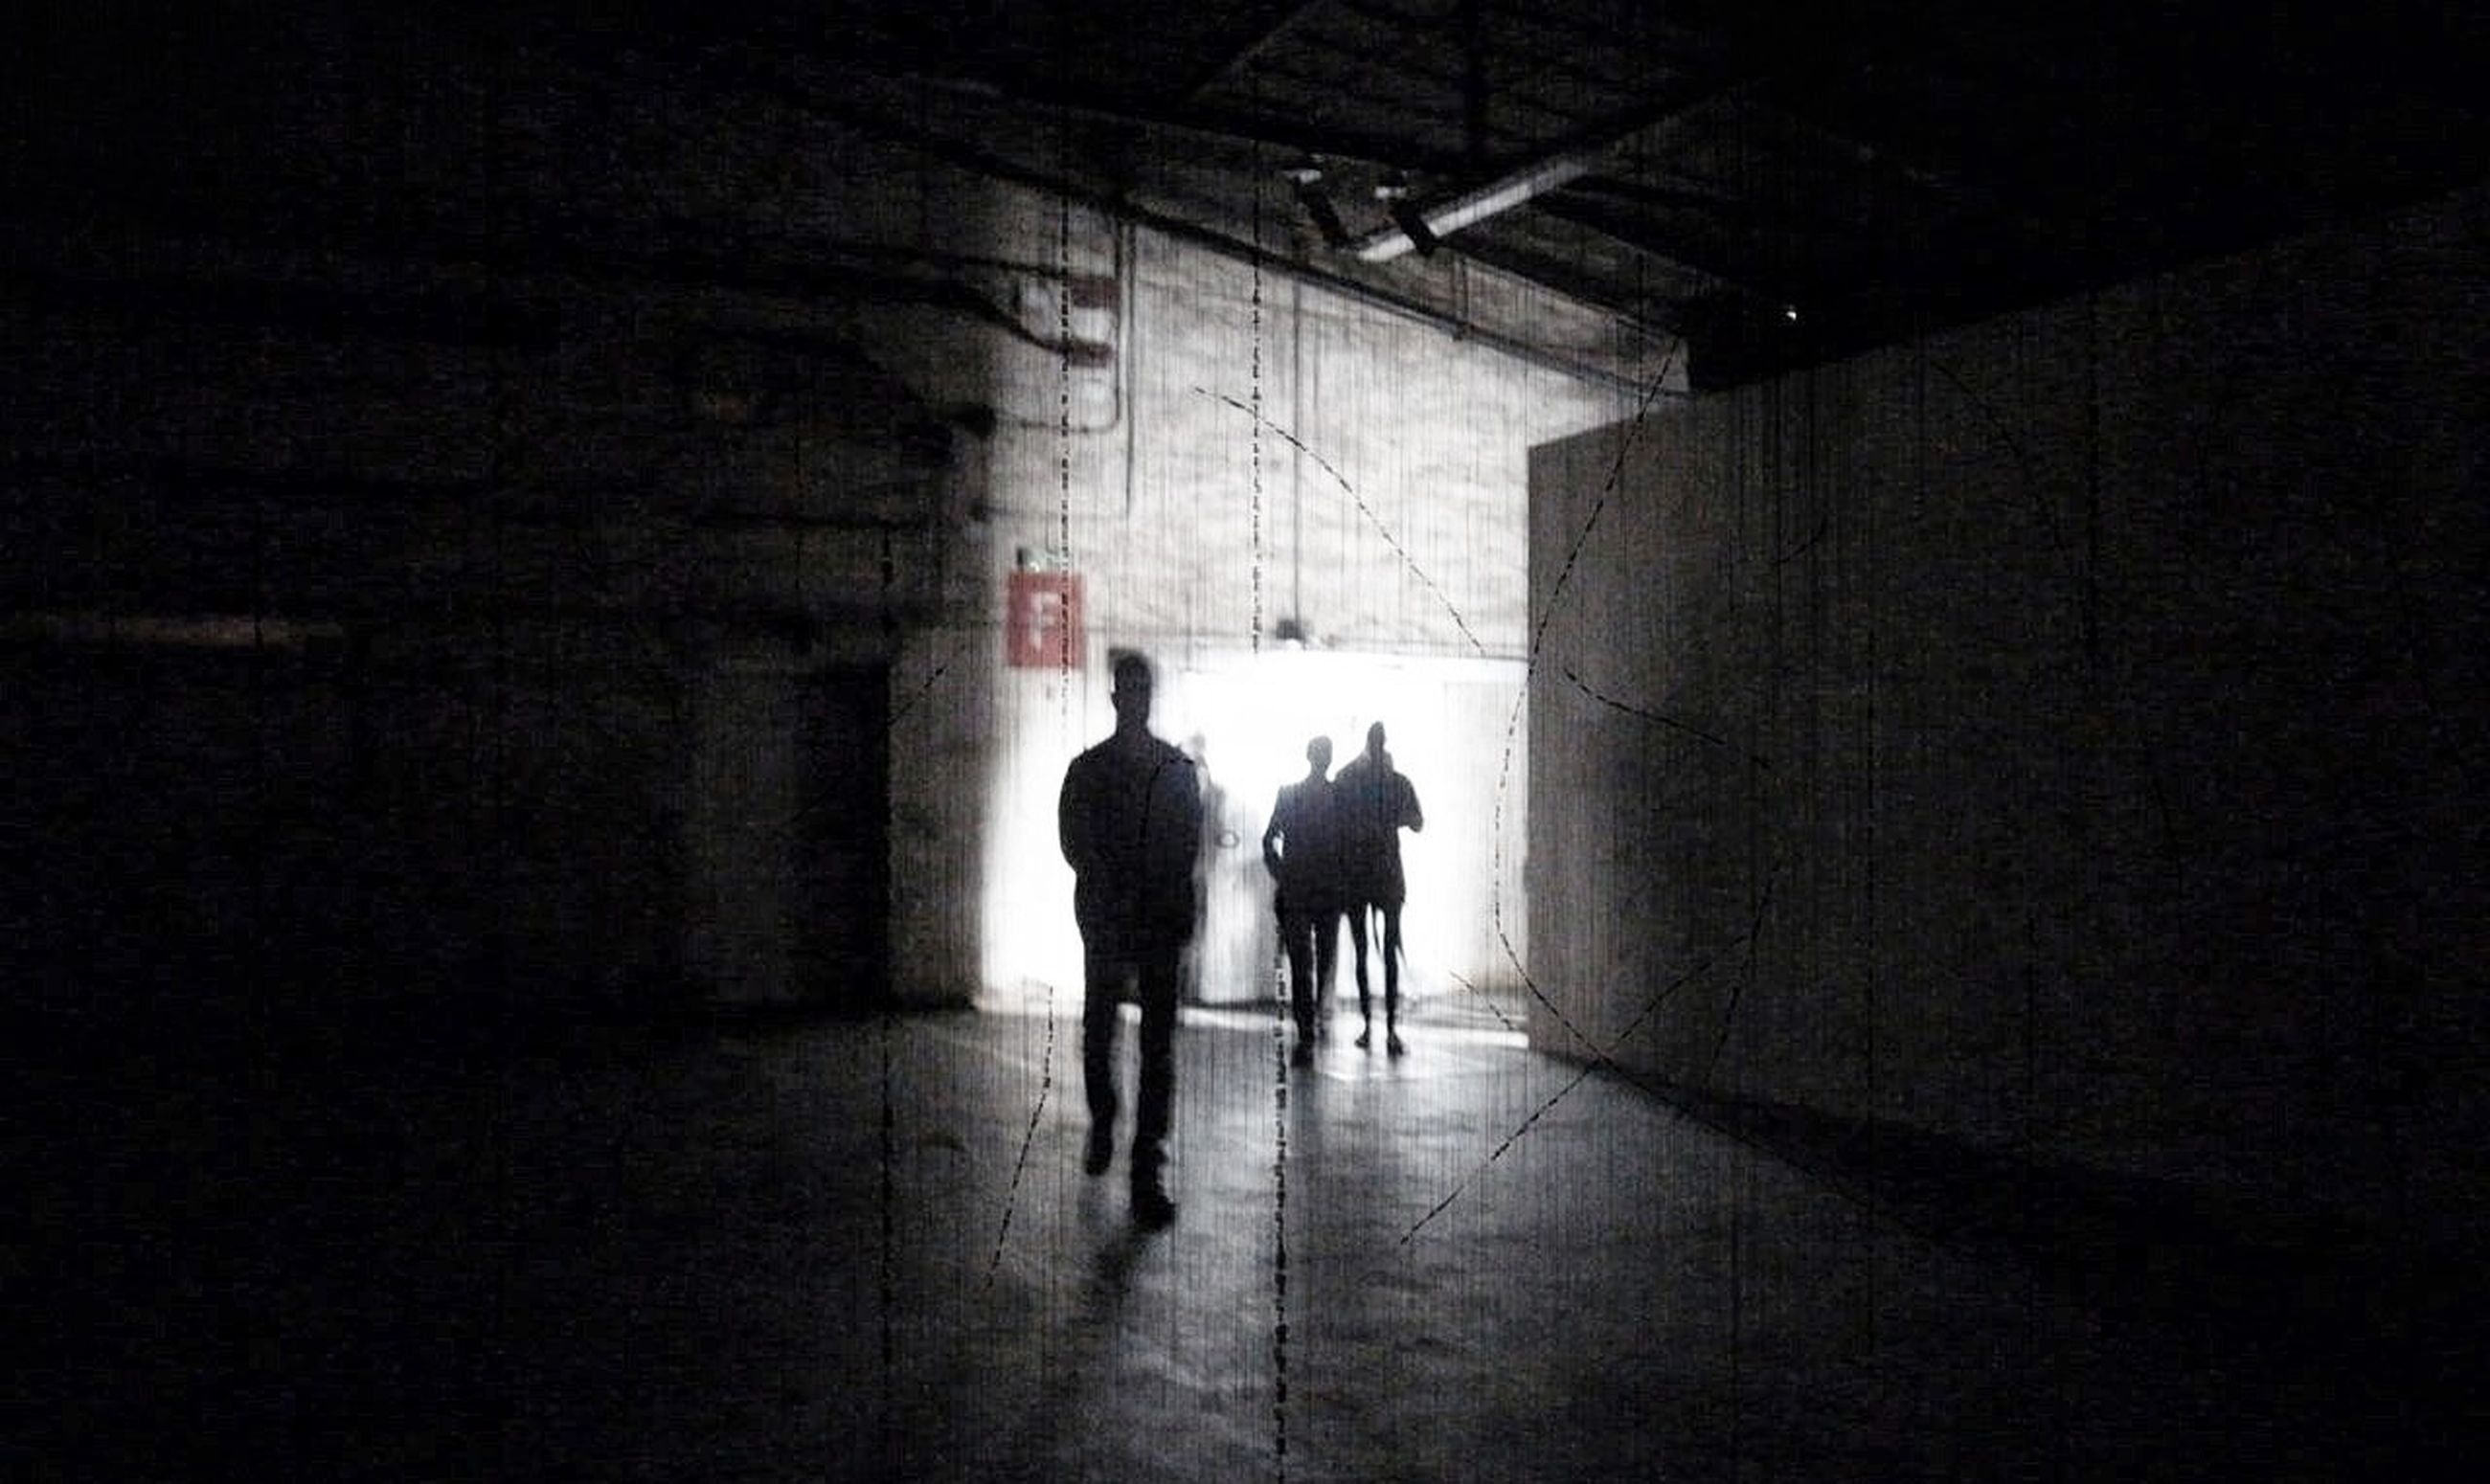 indoors, walking, full length, silhouette, rear view, men, architecture, lifestyles, built structure, corridor, the way forward, person, tunnel, wall - building feature, illuminated, dark, leisure activity